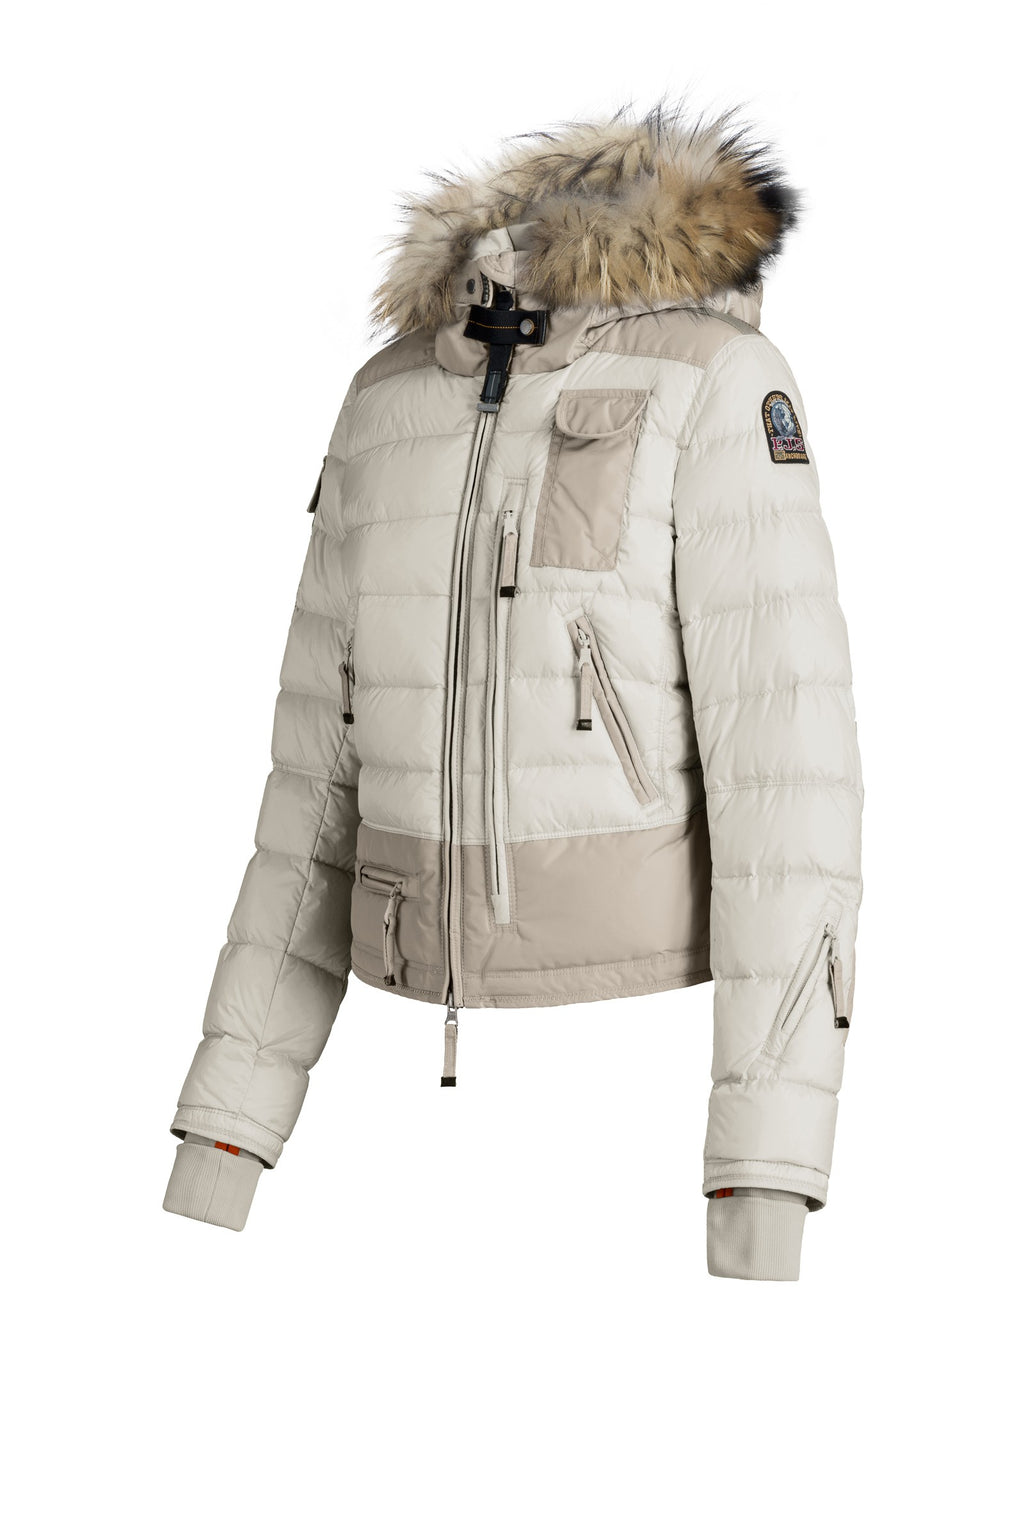 Parajumpers Skimaster Jacket in Chalk - BOUTIQUE TAG